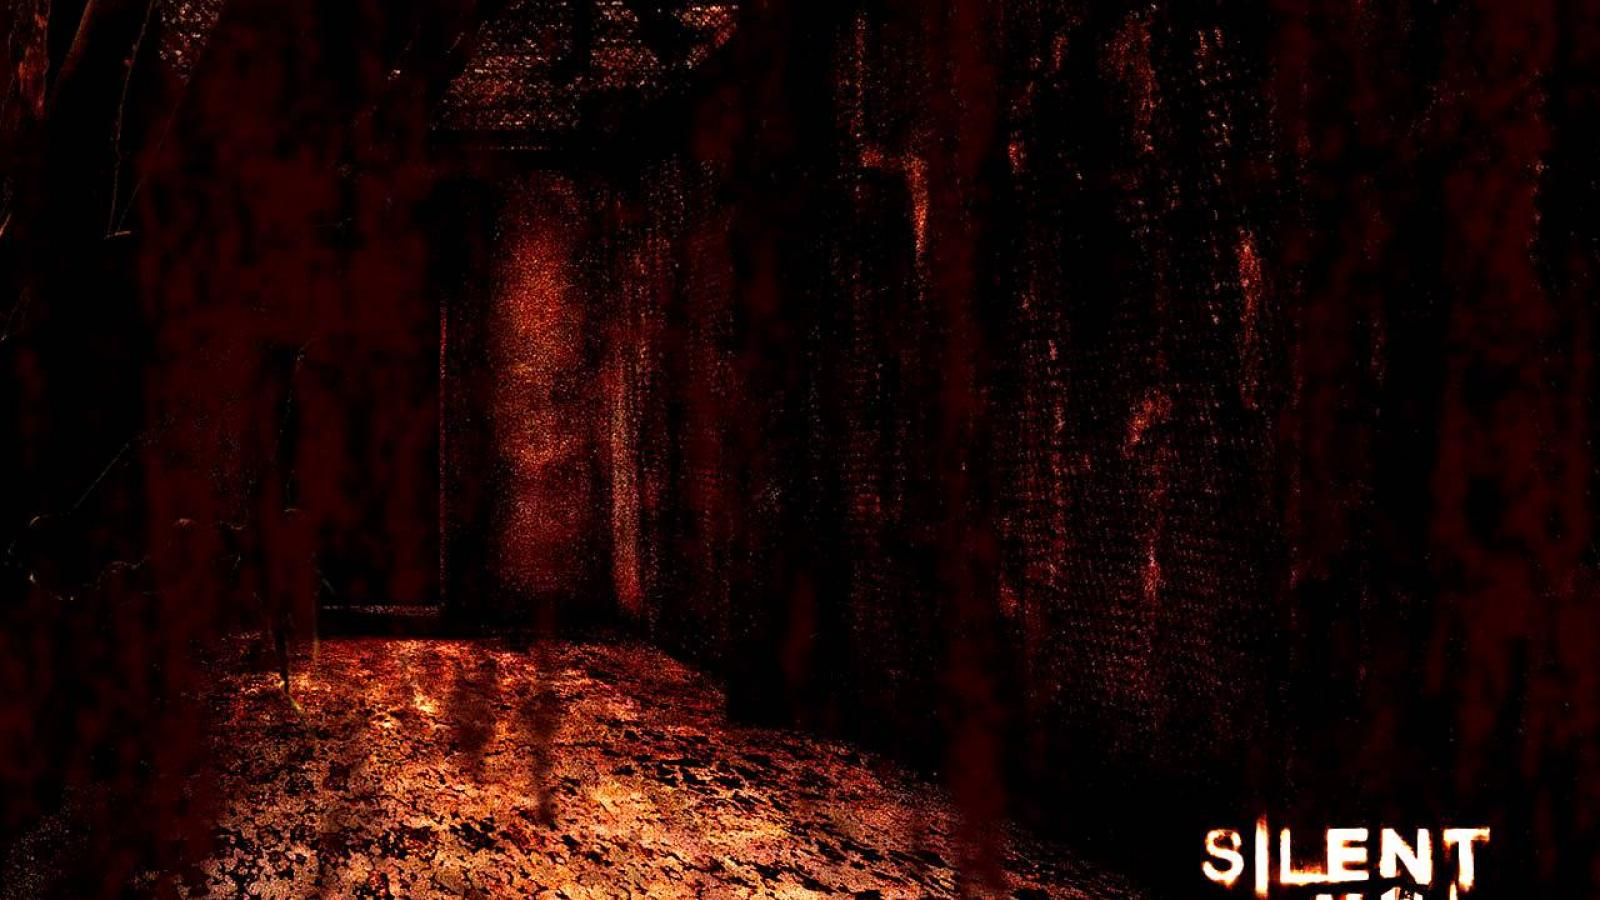 Silent hill wallpaper [3] HQ WALLPAPER   19308 1600x900